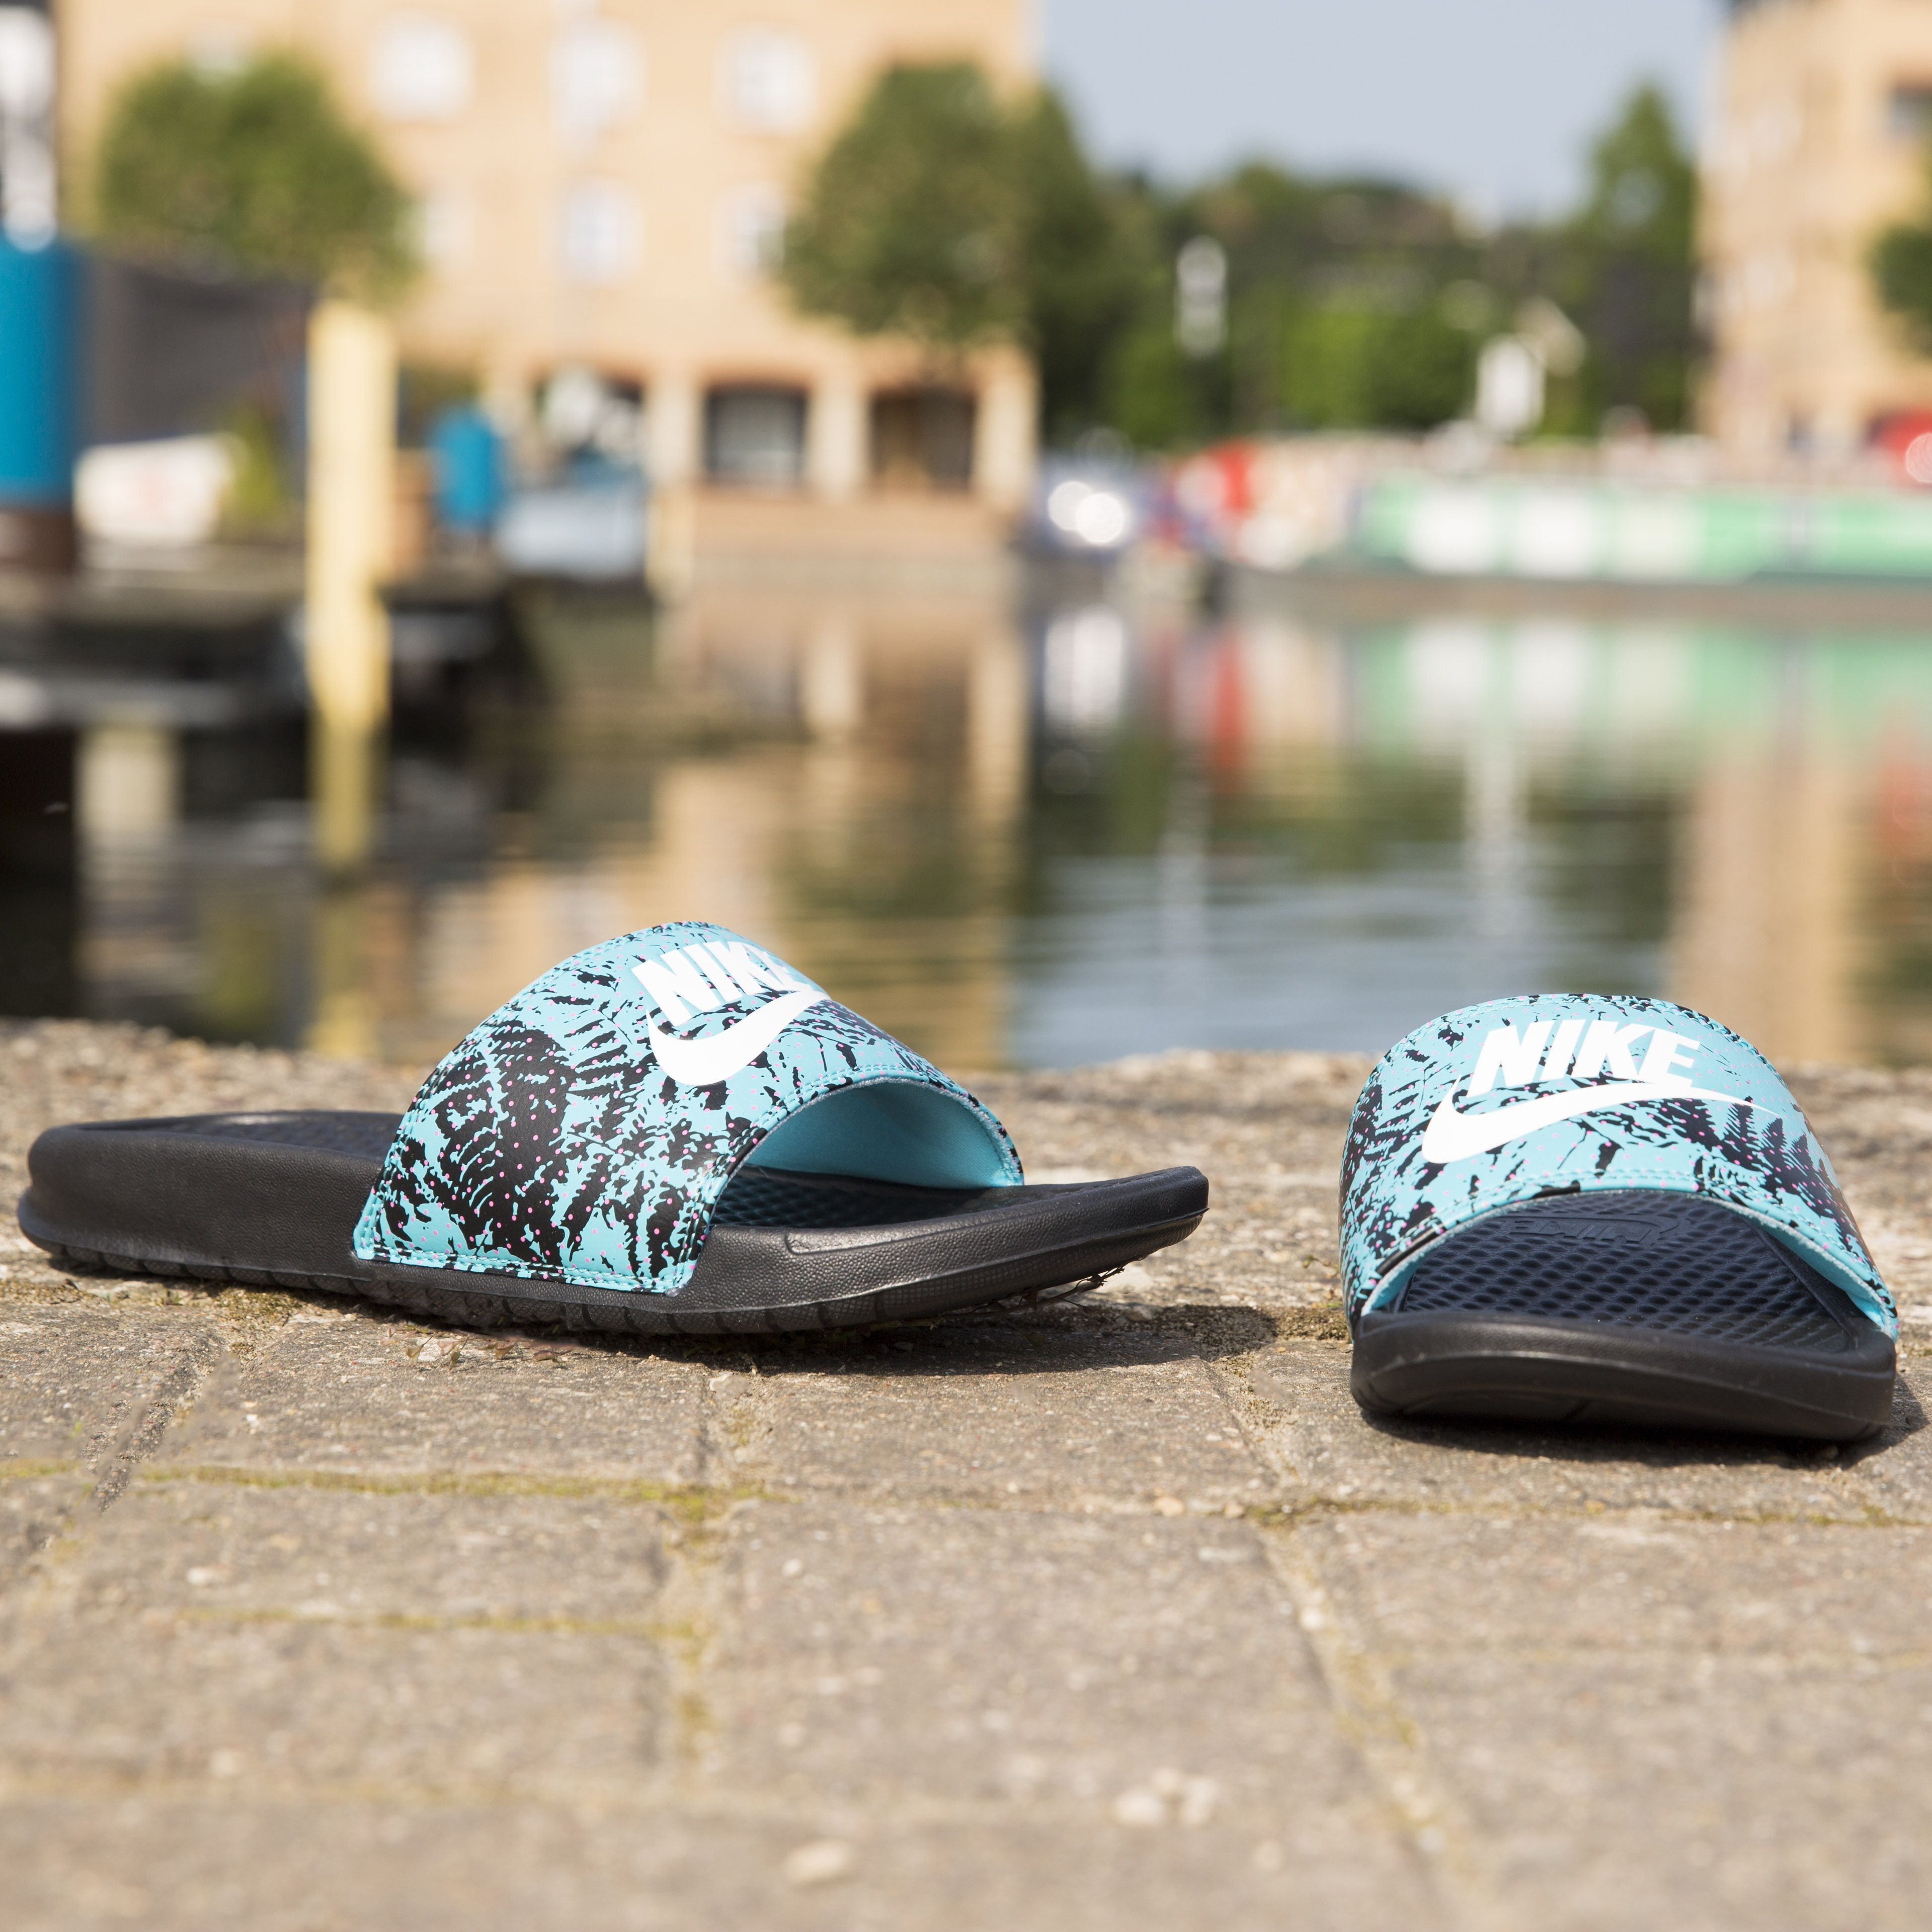 new style 902f3 0099f Waiting to slip into summer  These blue tropical print pool slides are the  answer ☀️